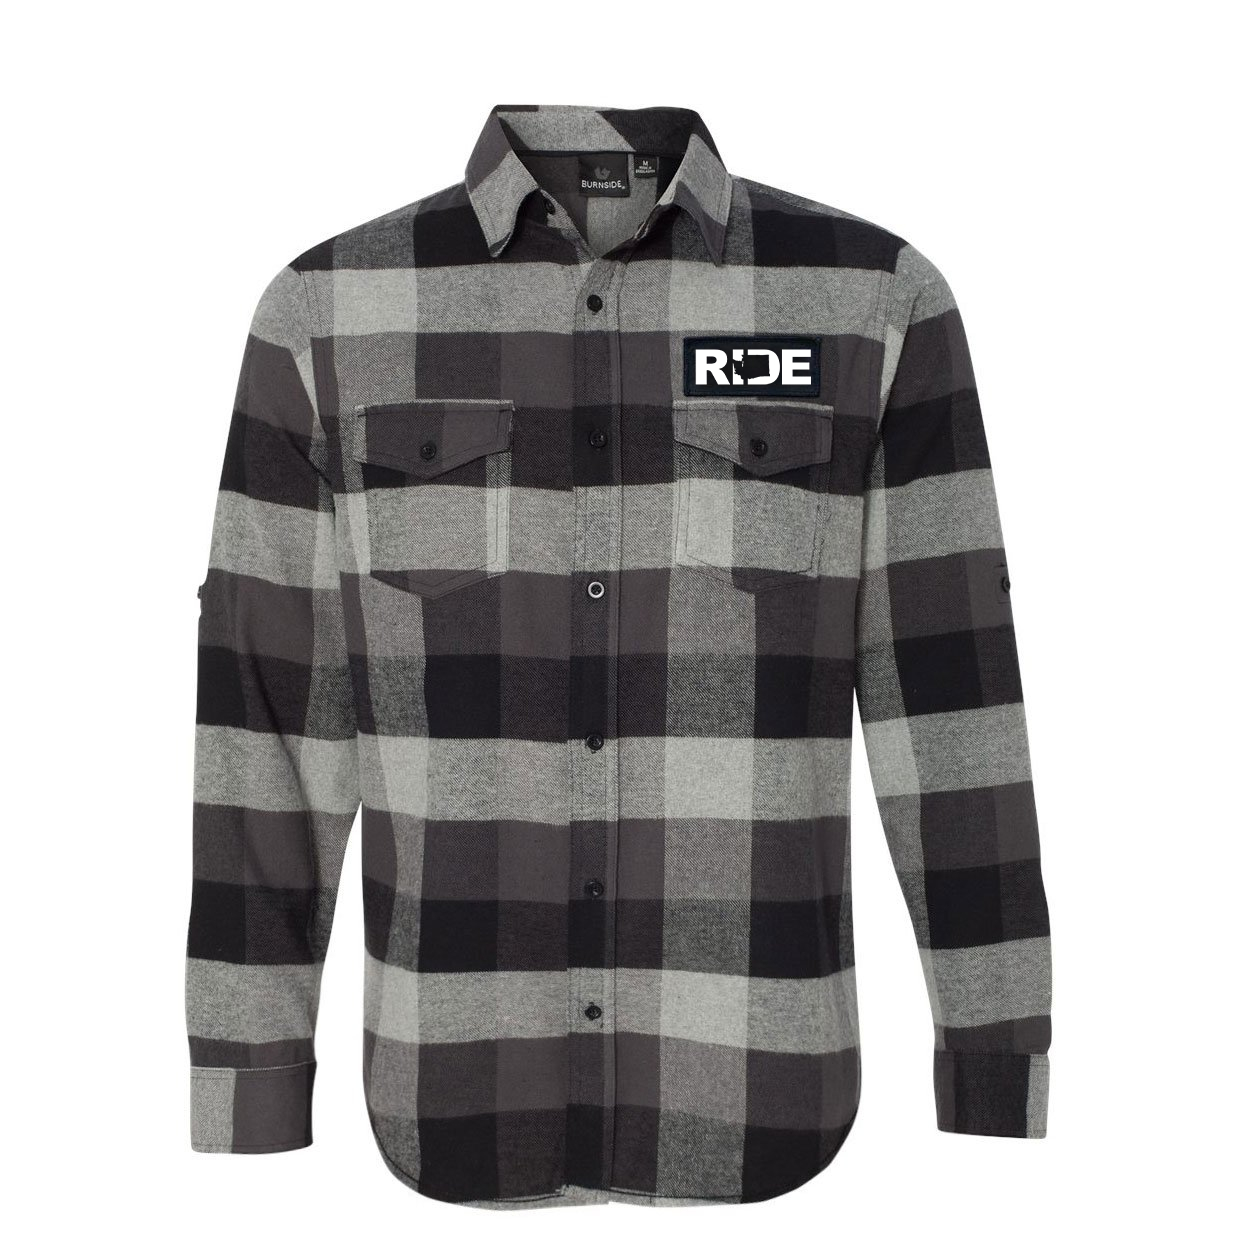 Ride Washington Classic Unisex Long Sleeve Woven Patch Flannel Shirt Black/Gray (White Logo)